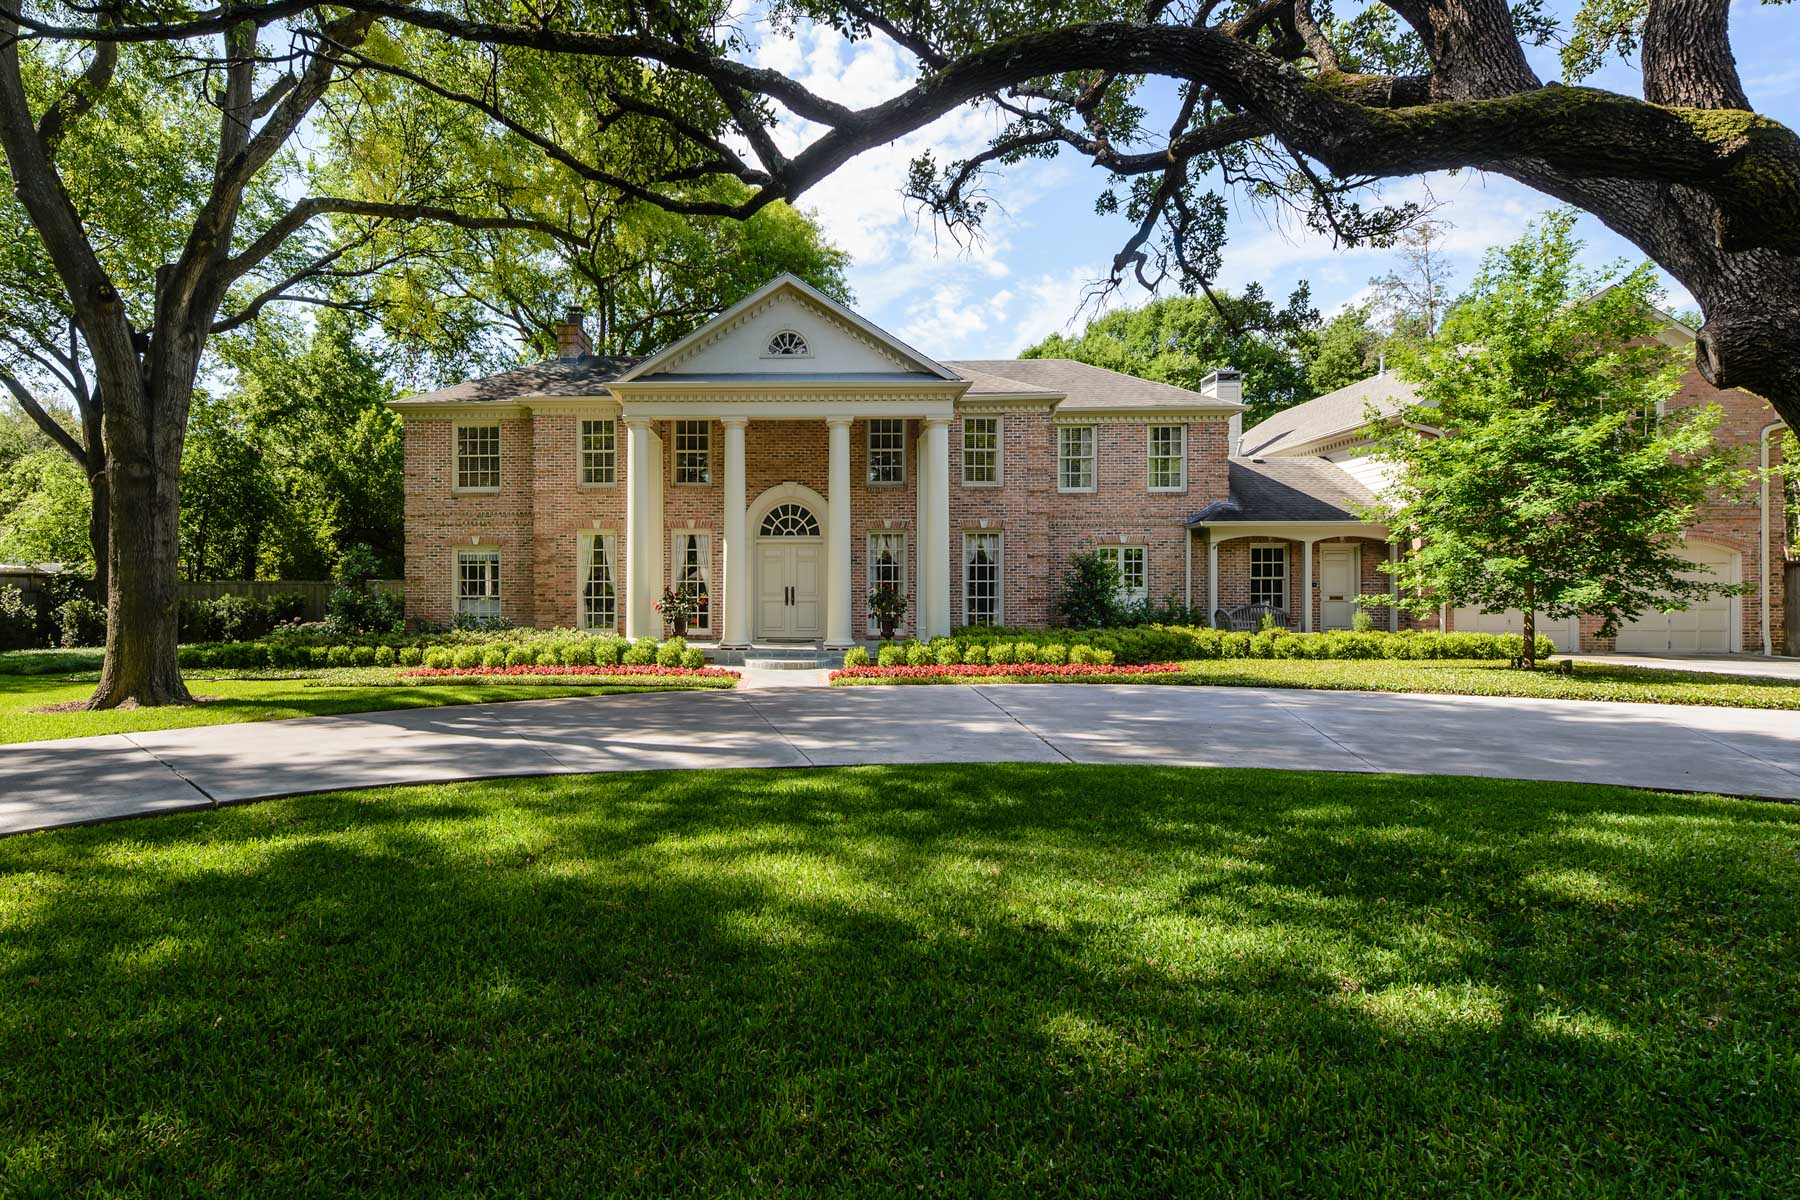 Maison unifamiliale pour l Vente à Preston Hollow Estate 5920 Park Lane Dallas, Texas, 75225 États-Unis